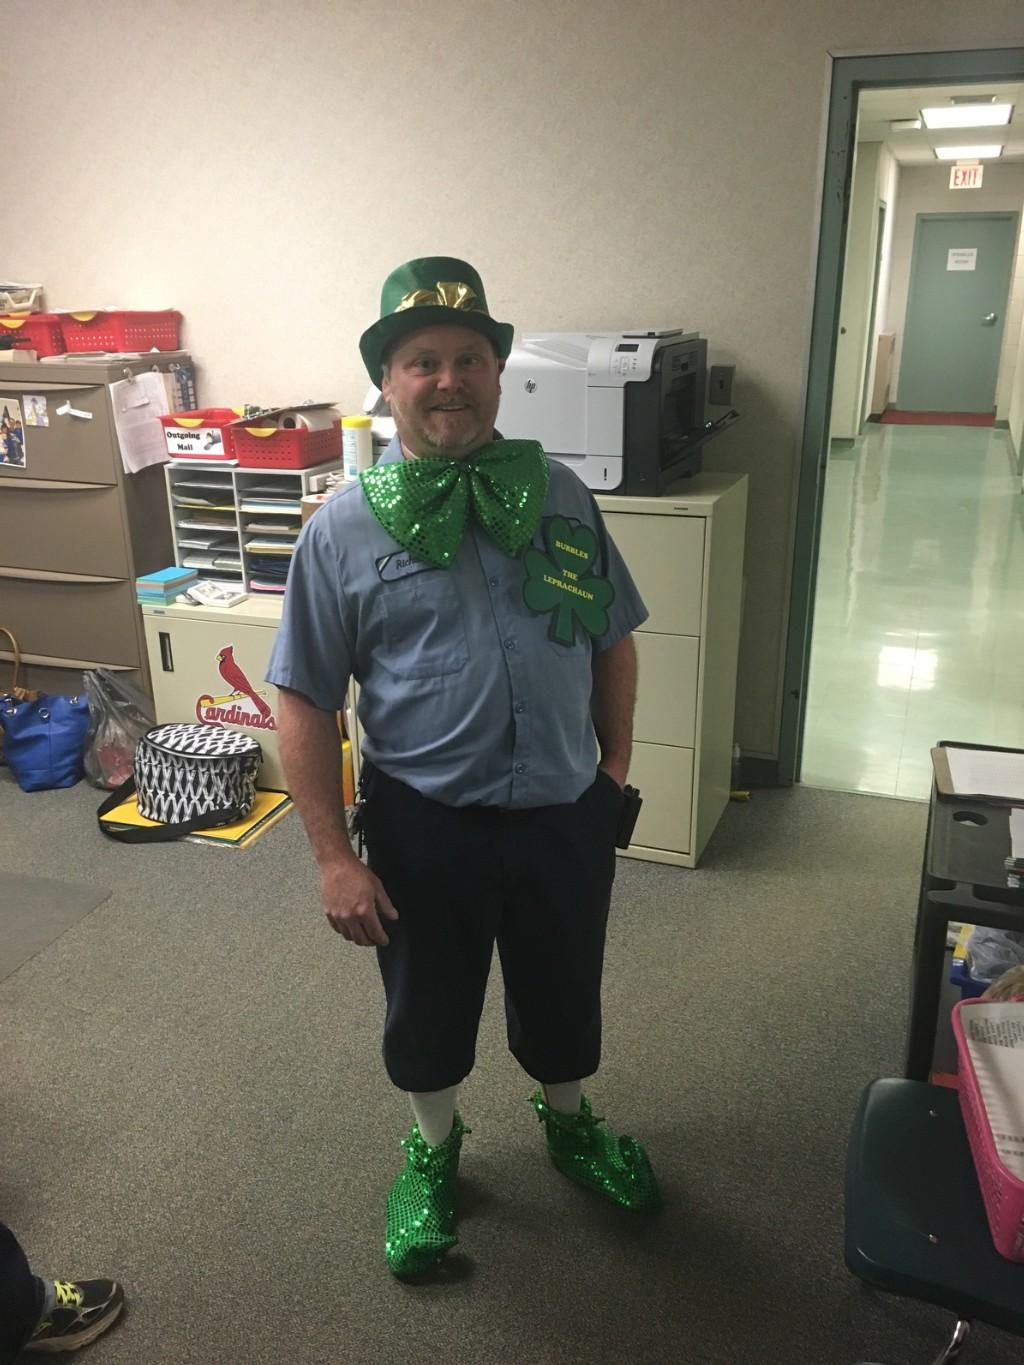 Rich on St. Patrick's day